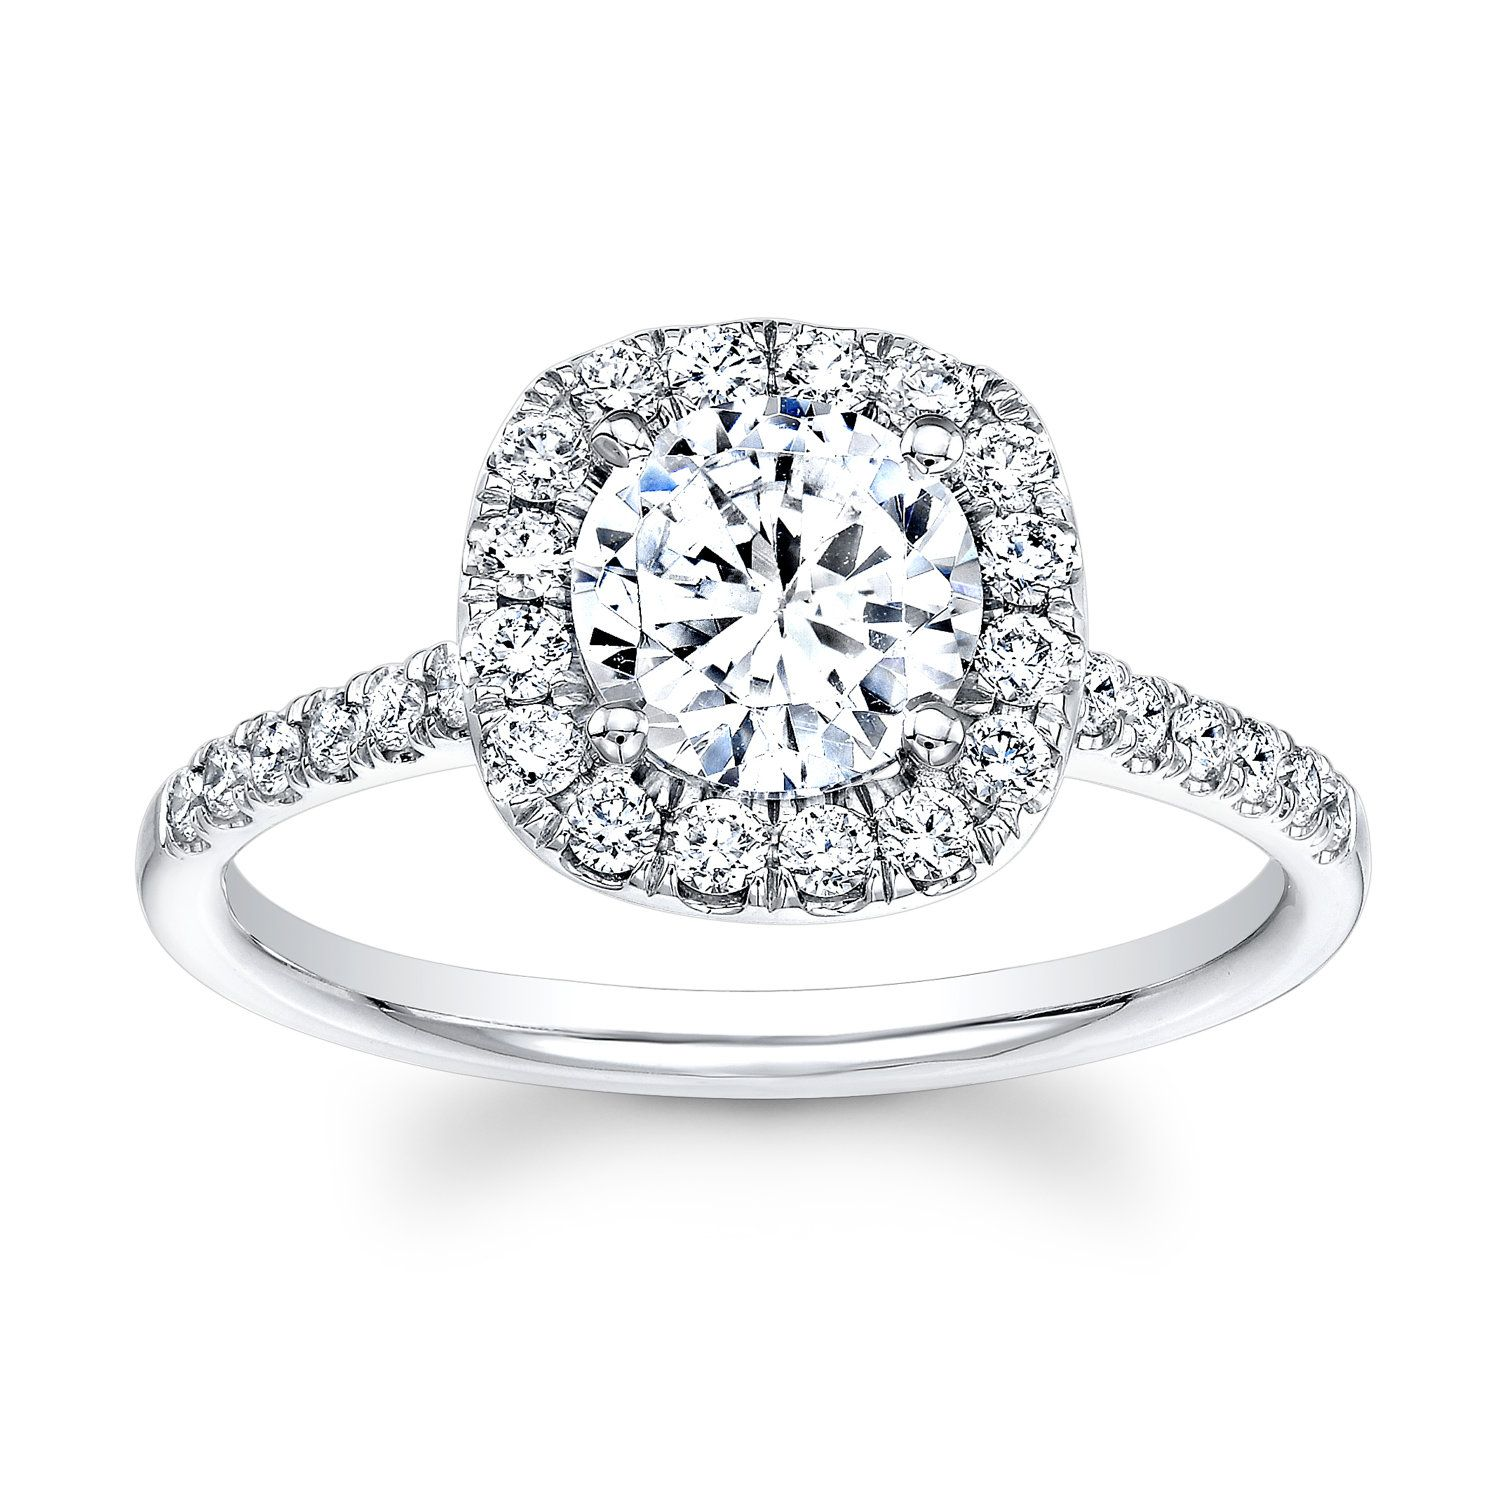 White Sapphire Engagement Ring Platinum Vintage Design With Cushion Top 0 40 Ctw G Vs2 Diamonds And 1ct Round White Sapphire In 2020 Diamond Engagement Rings Vintage Yellow Gold Engagement Rings White Gold